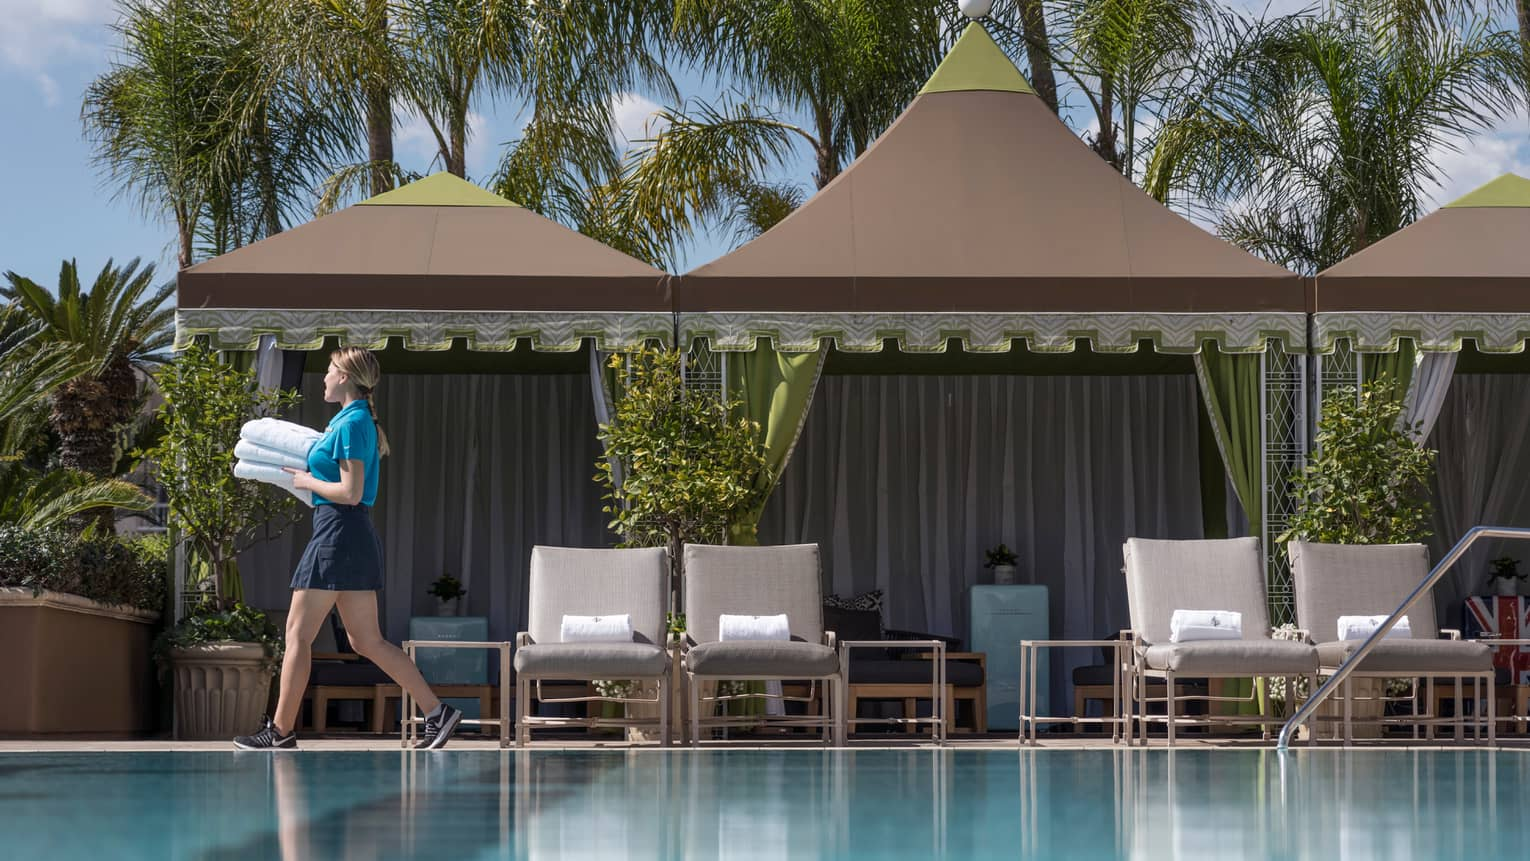 Hotel Staff Carries Stack Of White Towels Past Cabanas On Outdoor Swimming Pool Deck